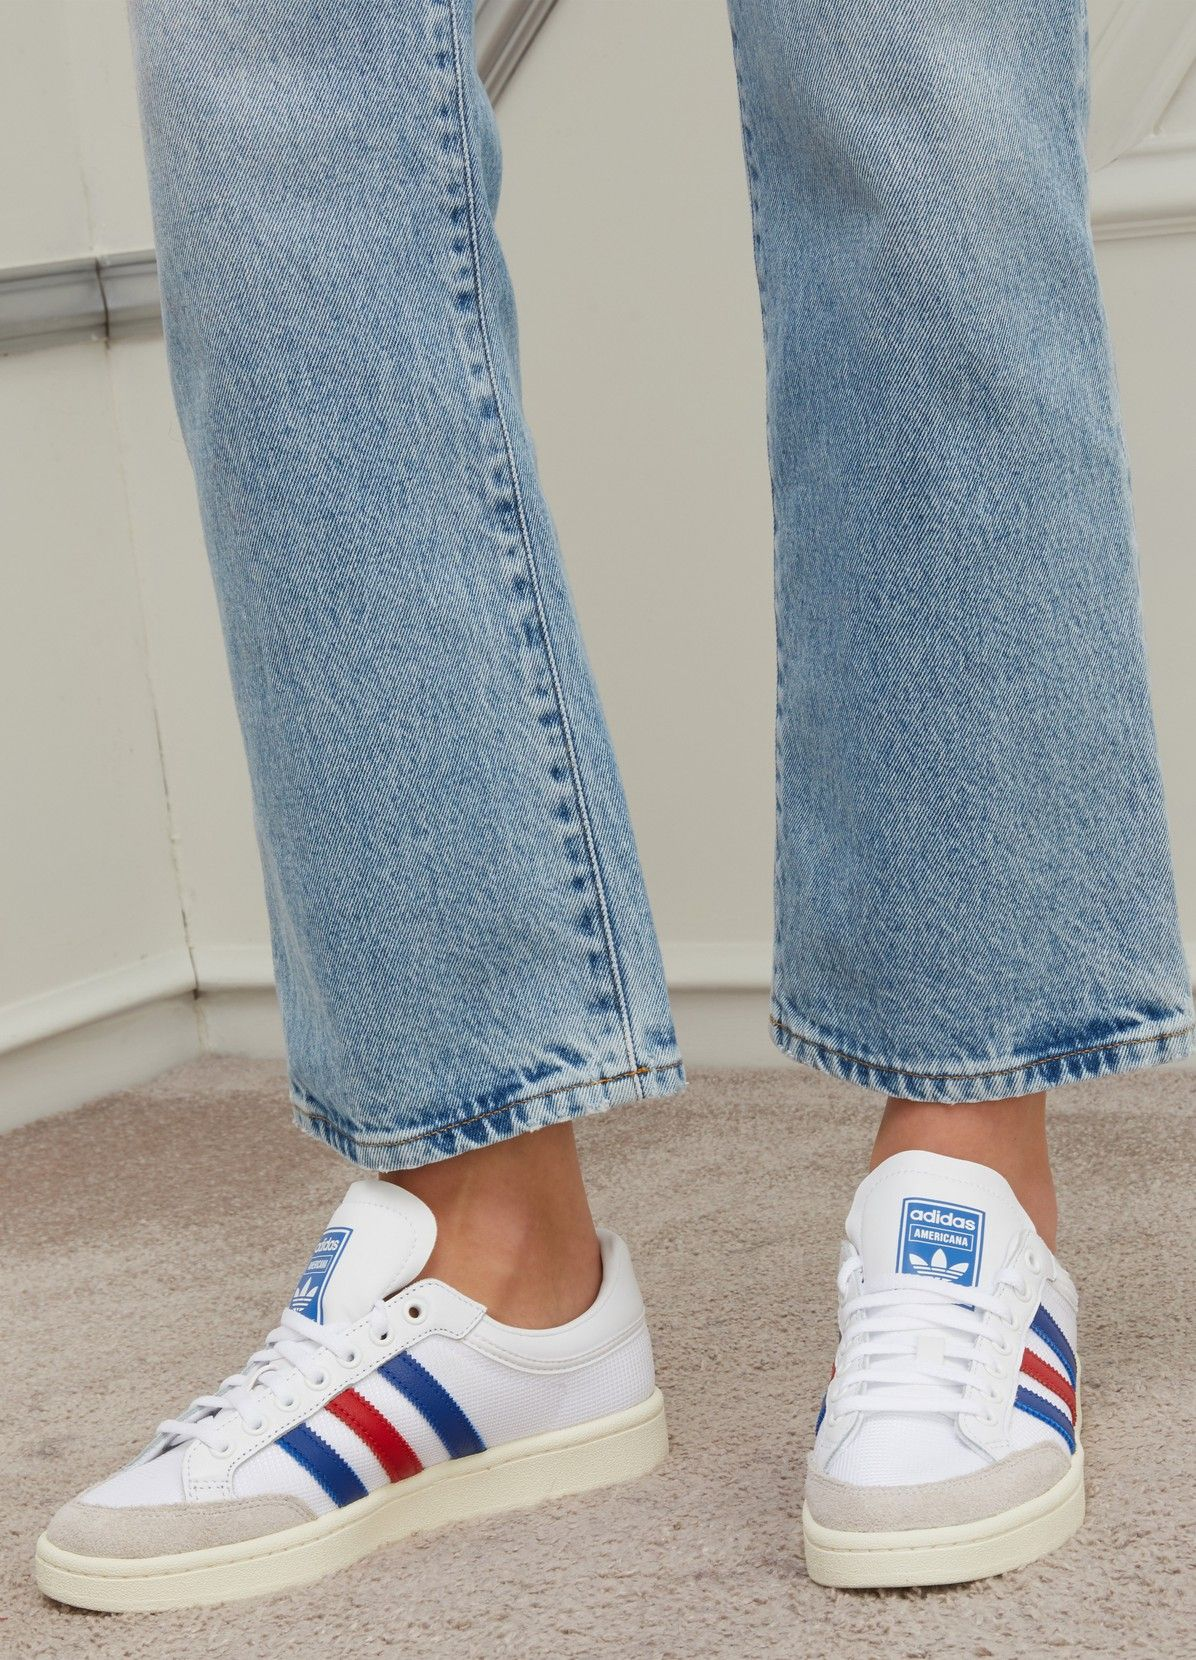 Women's American Low trainers | ADIDAS | 24S | 24S | Adidas ...